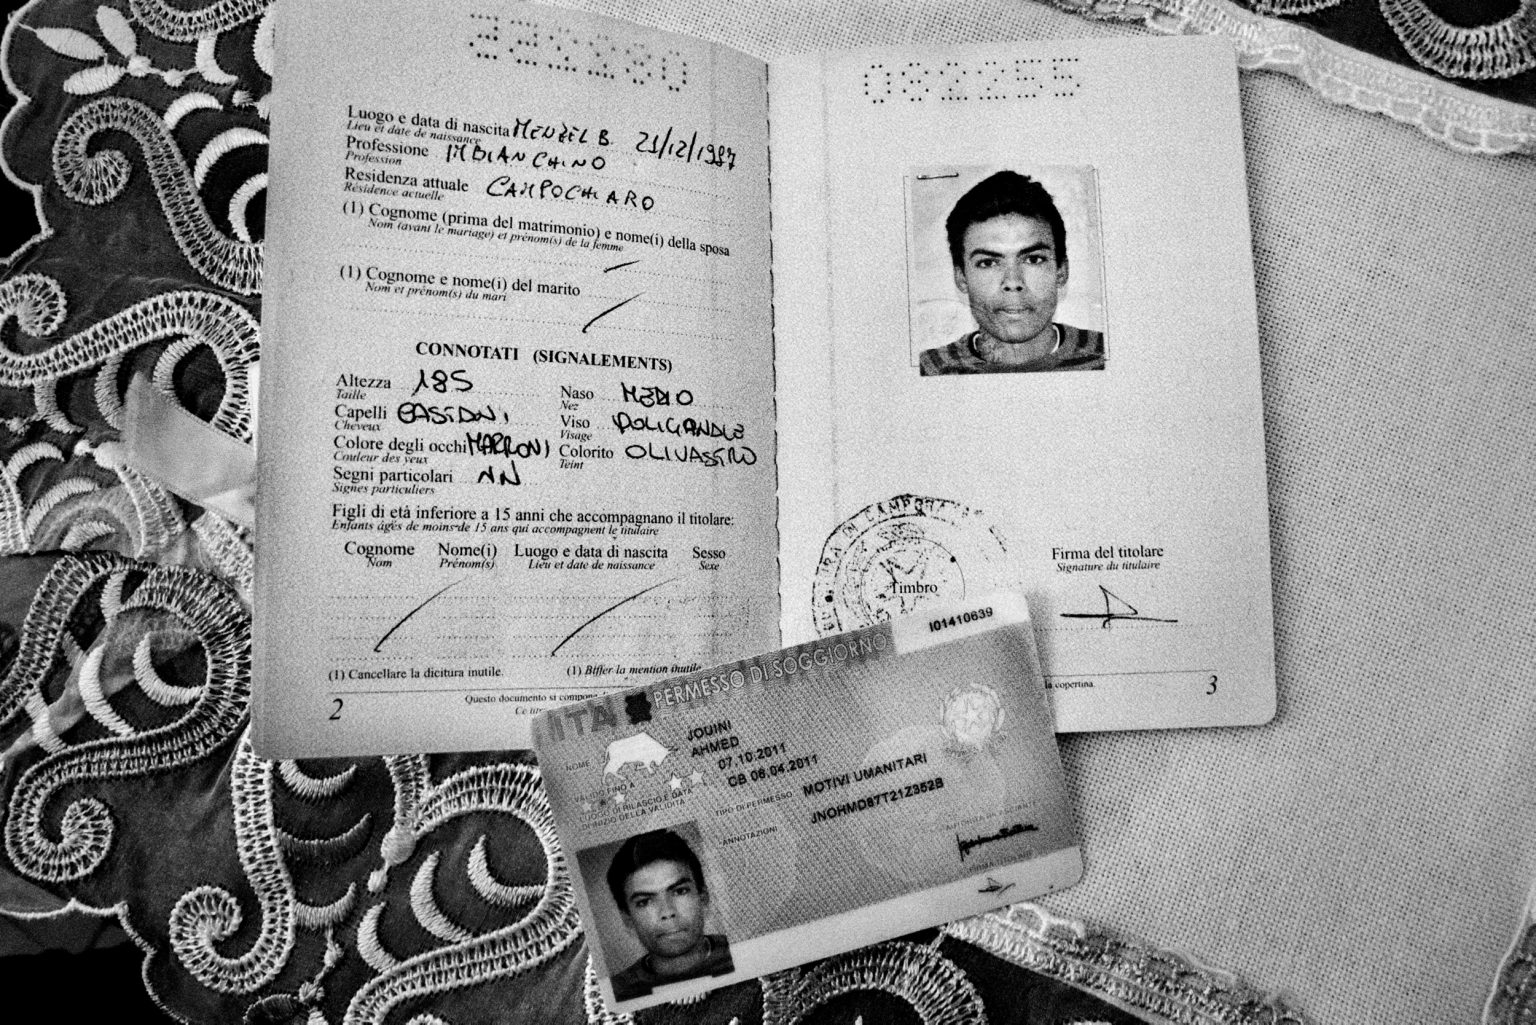 Lampedusa, April 2011-The story of Ahmed, one of the many young Tunisians landed on Lampedusa. Ahmed, a 23-year-old Tunisian who was being looked after by the Matinas, a Lampedusans family. The family gave him a bed, clothes,food, and they lived togheter for a year. Ahmed in the house of the local family.  Lampedusa, aprile 2011-La storia di Ahmed, uno dei tanti giovani tunisini sbarcati a Lampedusa. Ahmed, un tunisino di 23 anniè stato accudito dai Matinas, una famiglia lampedusana. La famiglia gli ha dato un letto, dei vestiti e  cibo. Hanno vissuto insieme per un anno.Ahmed in casa della famiglia.